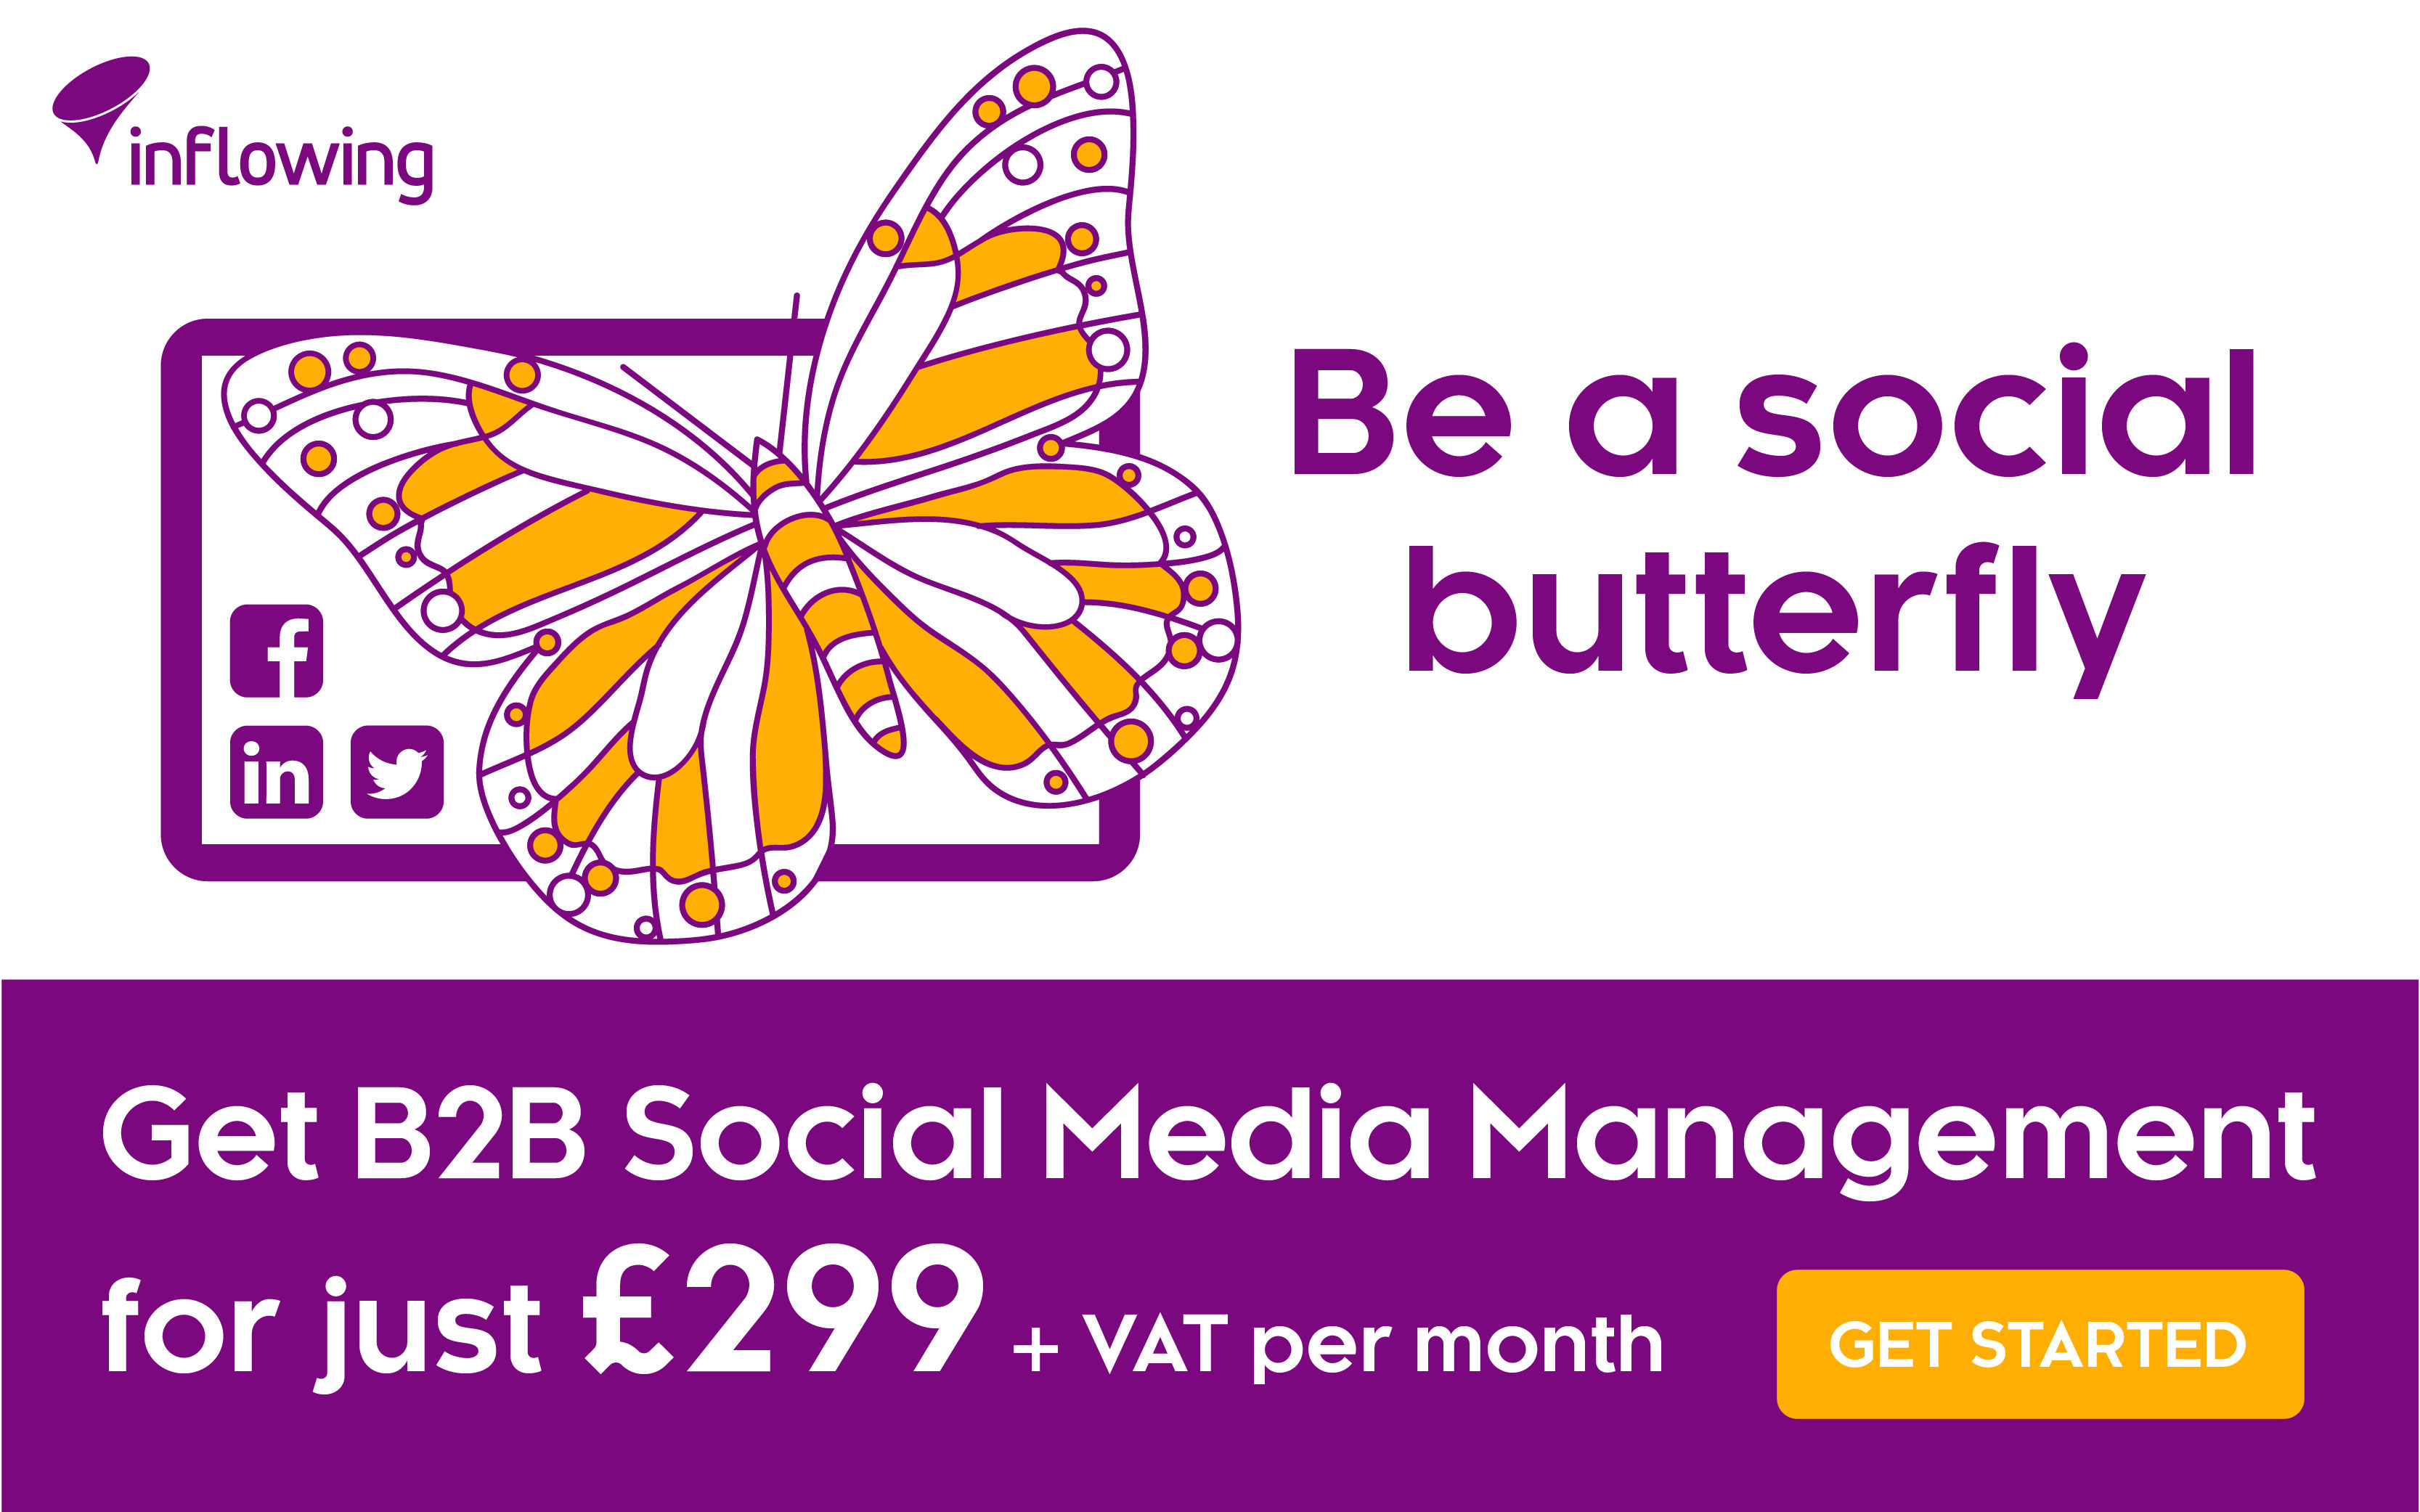 B2B Social Media Management £299 + VAT